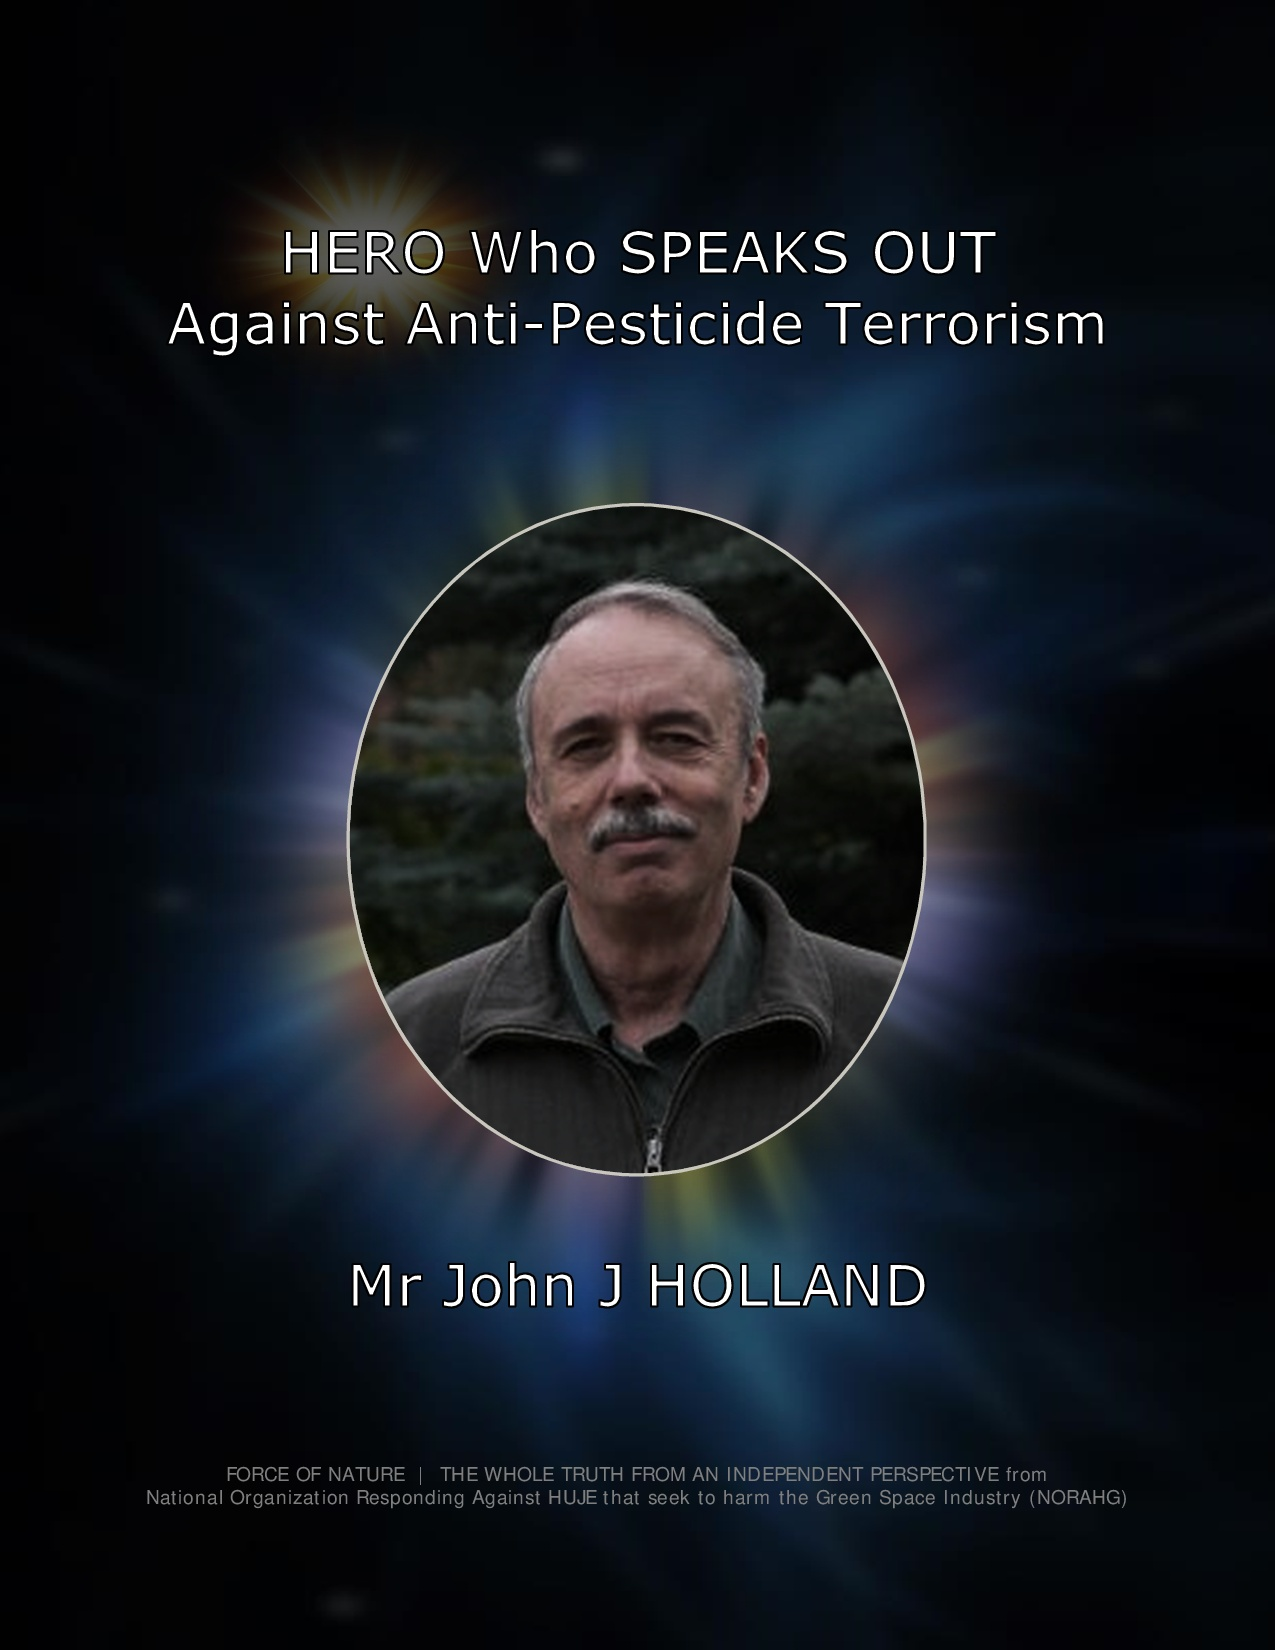 HOLLAND, Mr John J